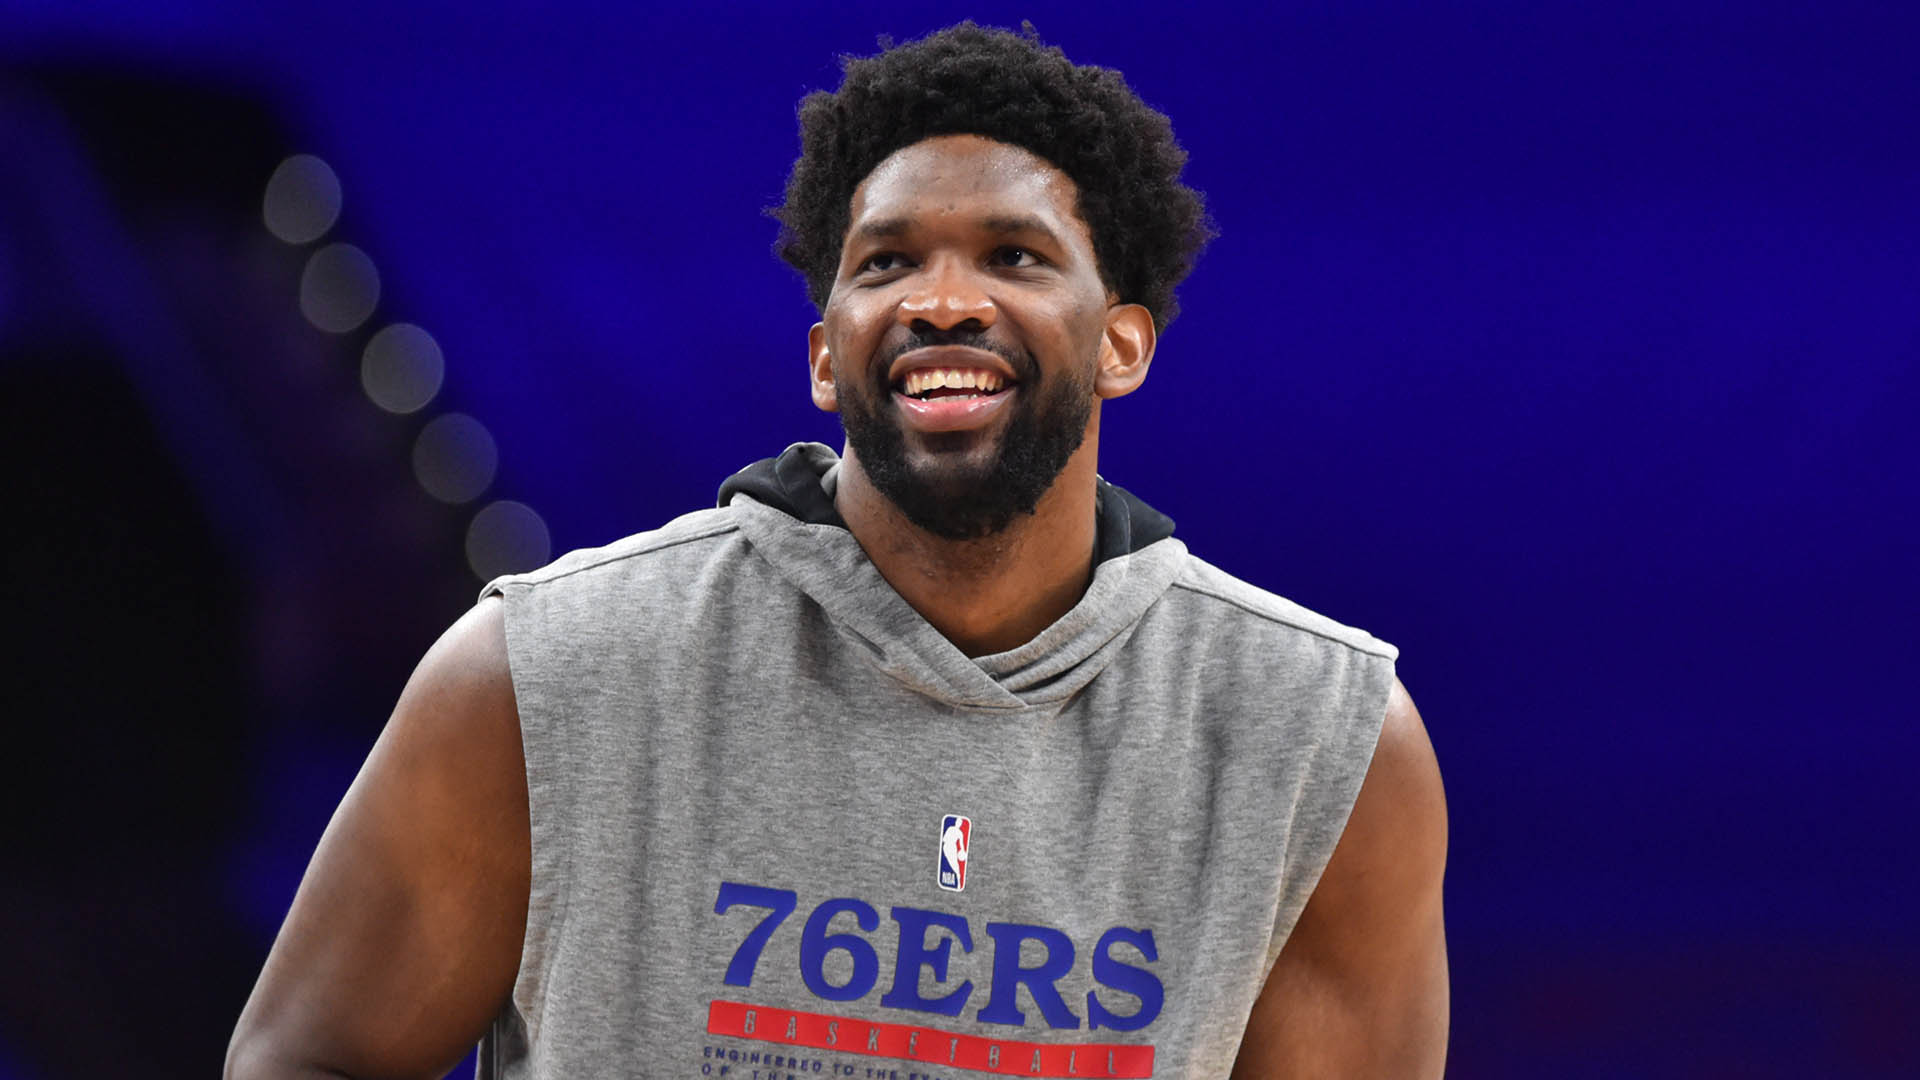 Sixers' Joel Embiid to donate $100K to combat homelessness